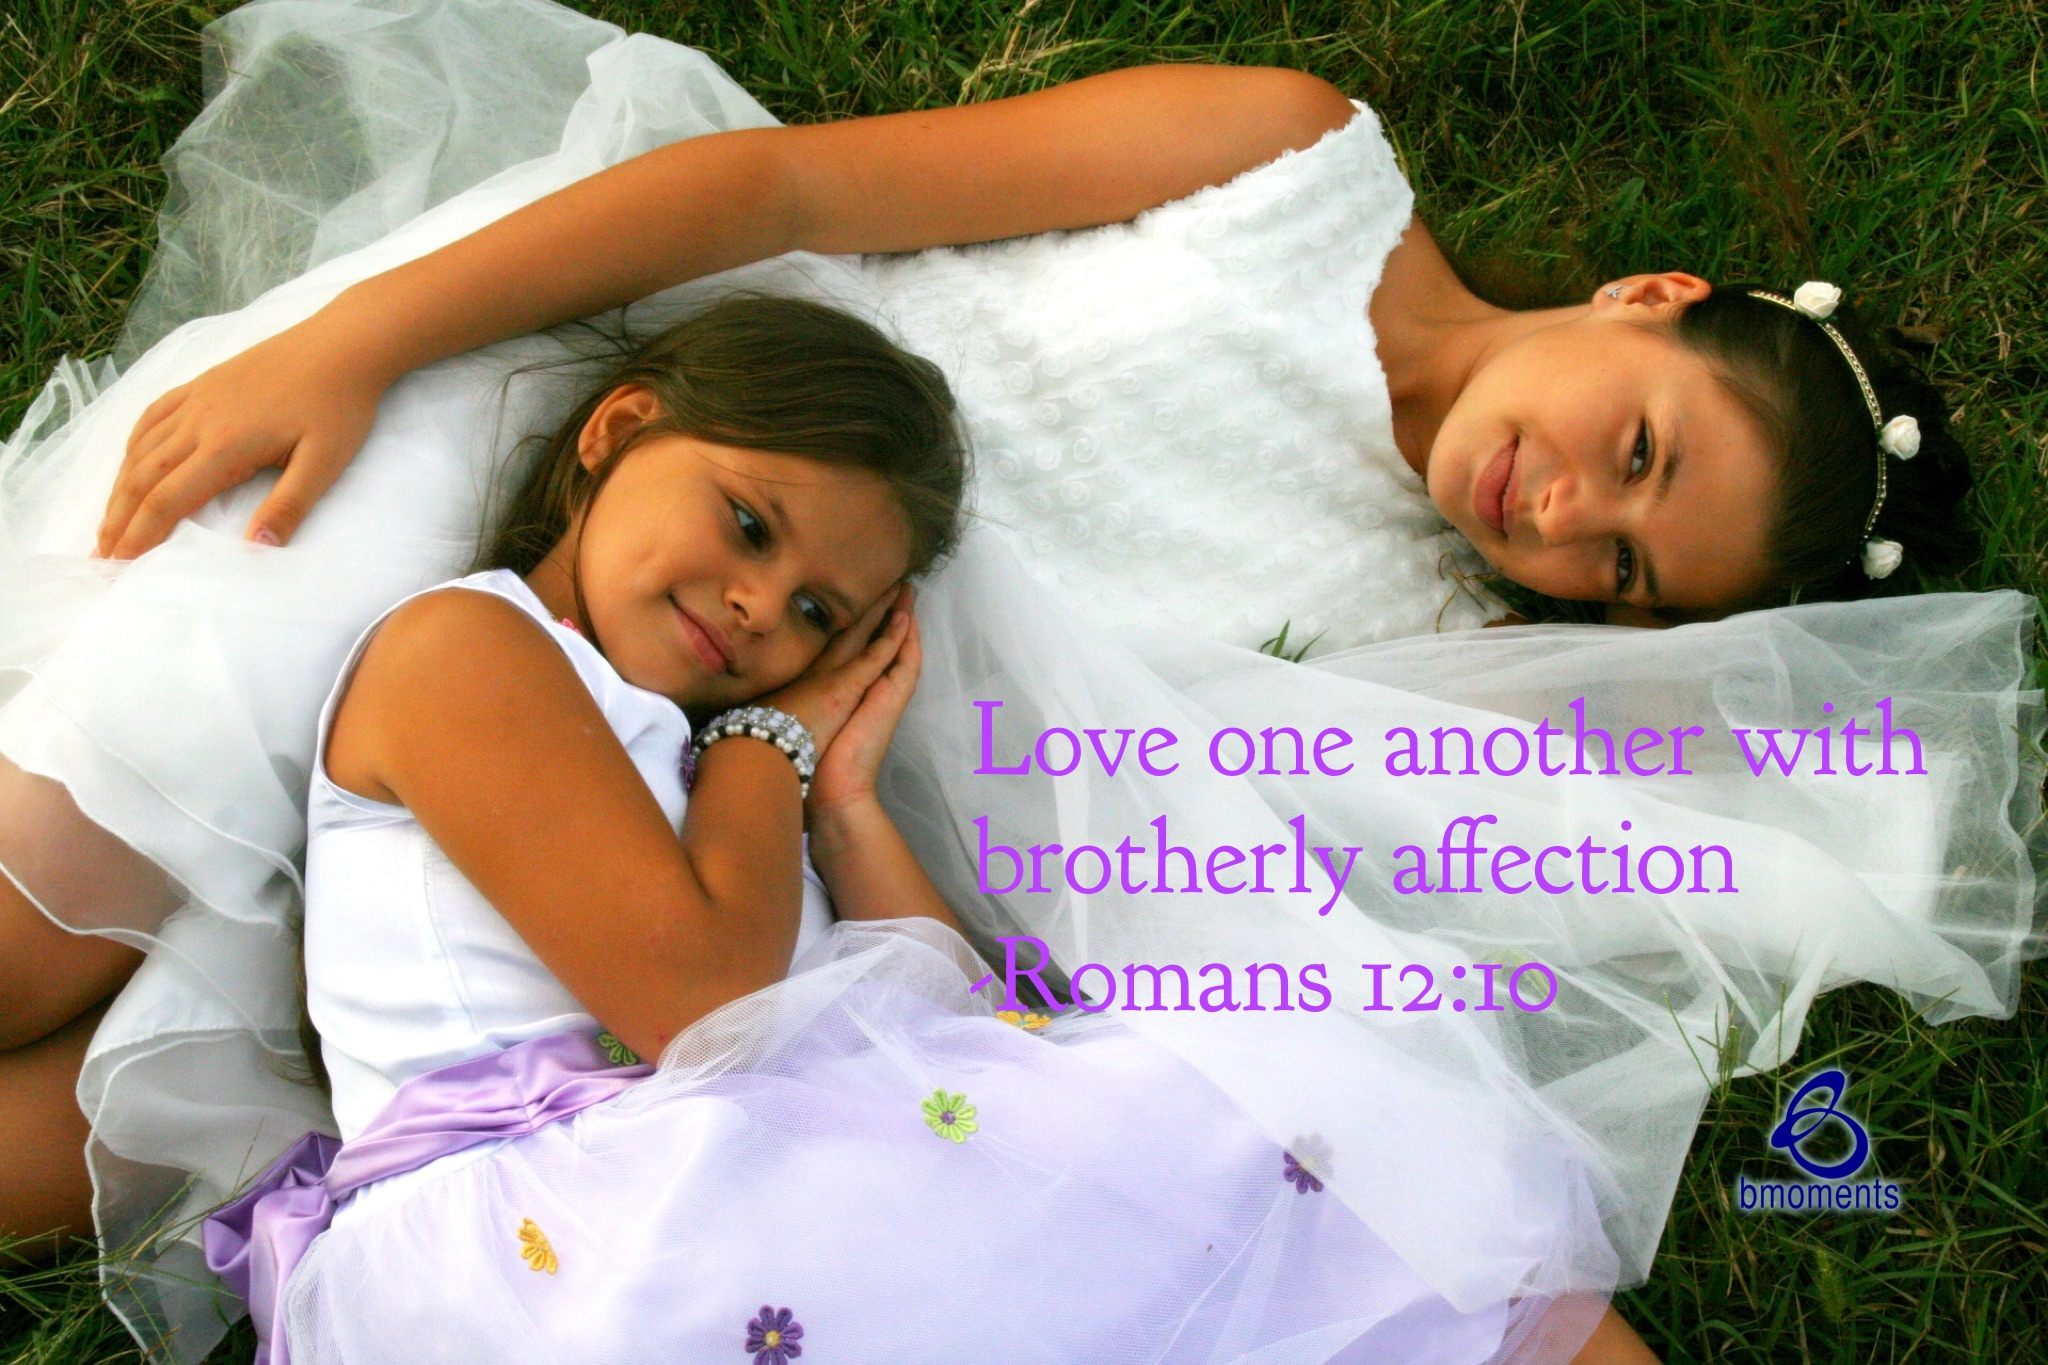 two sisters in white dresses. Romans 12:10, Bmoments